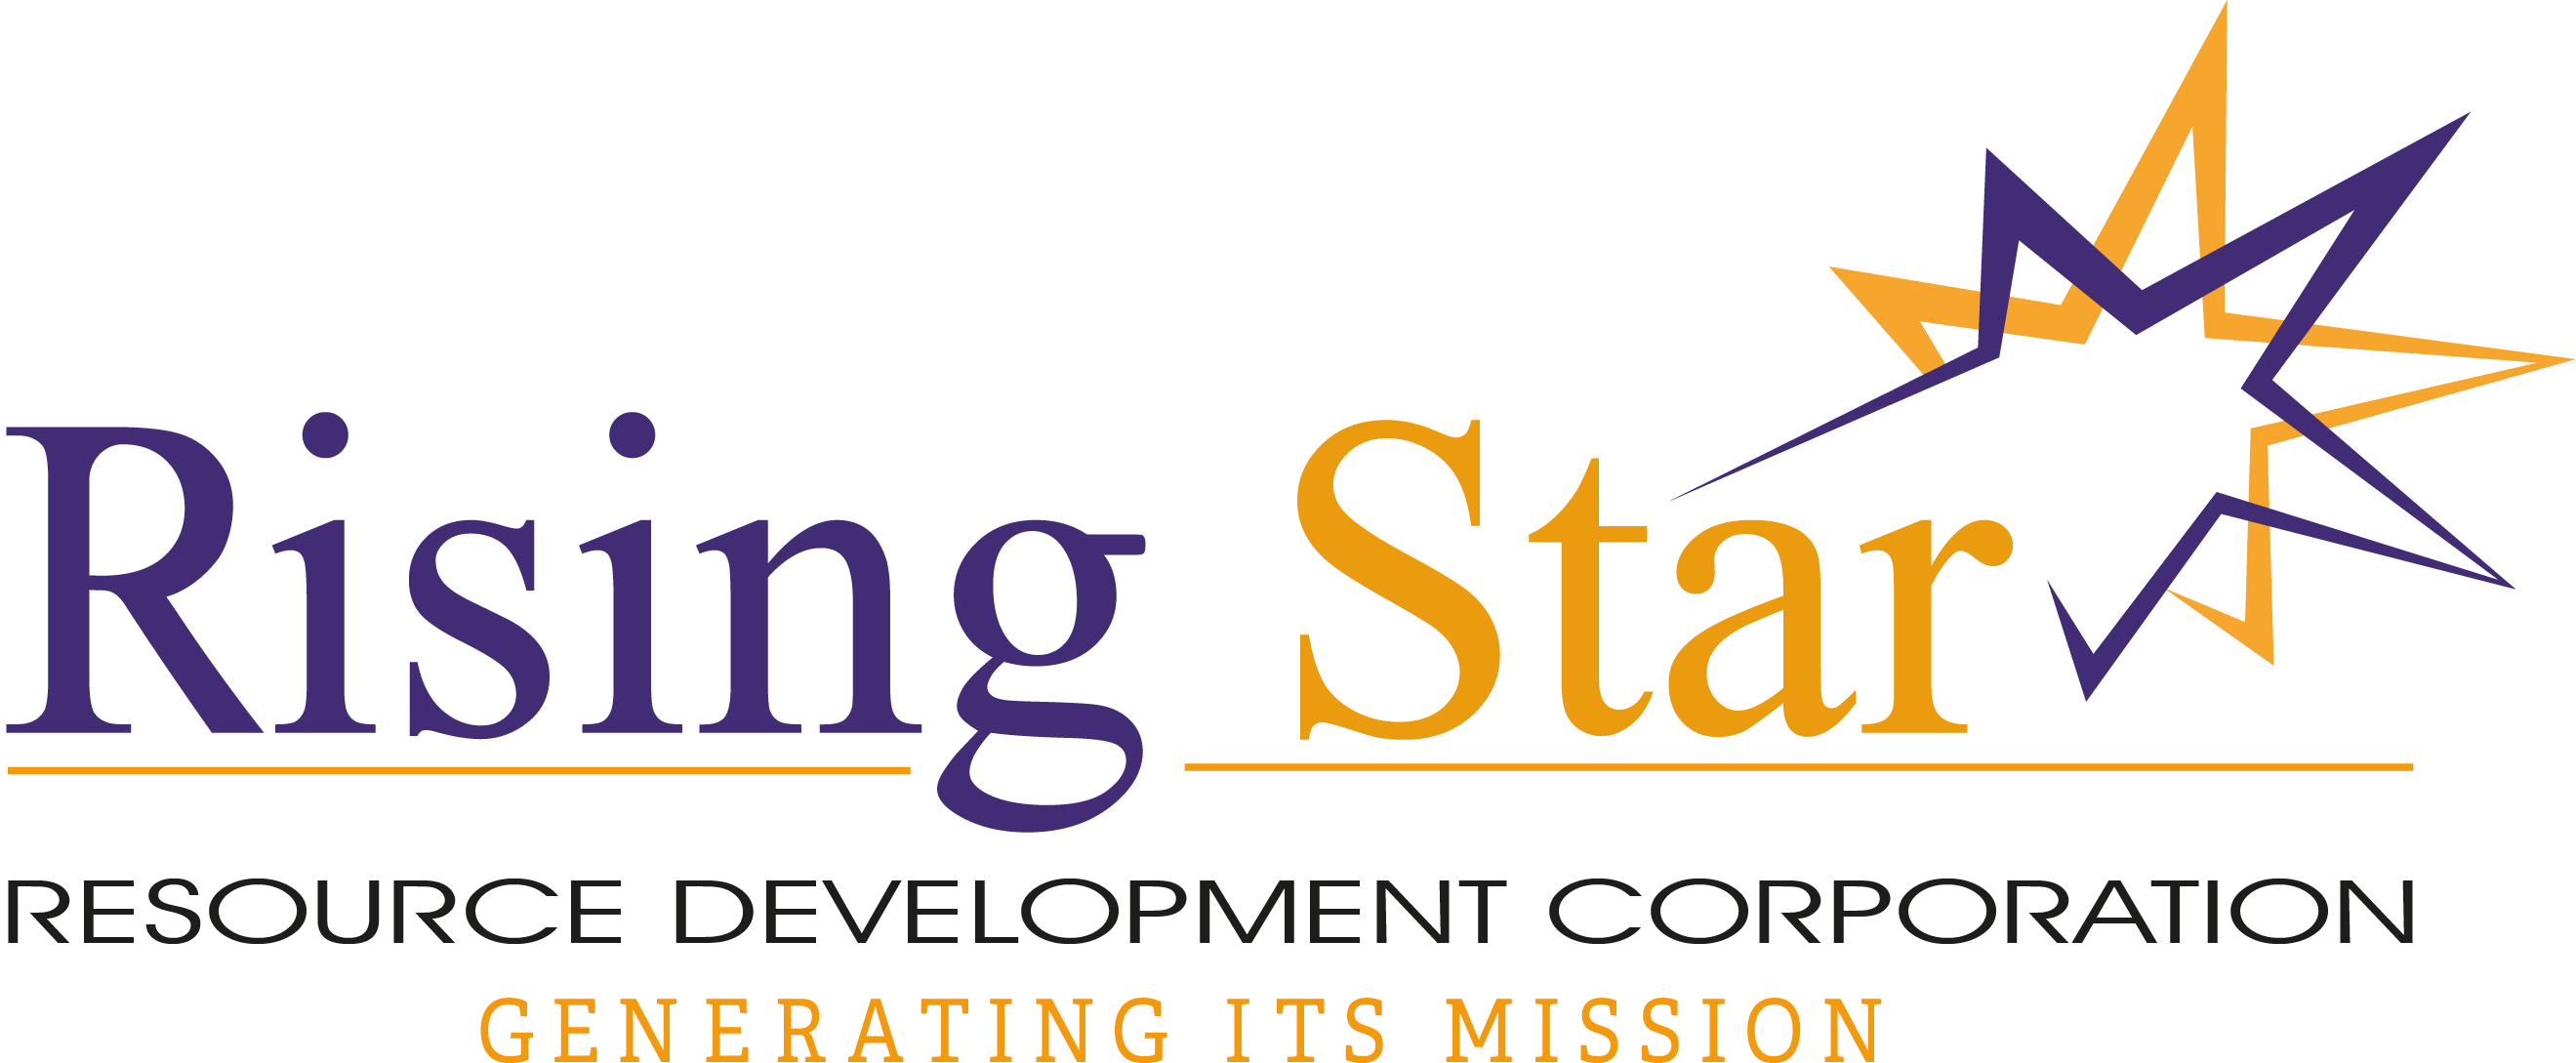 Rising Star Resource Development Corporation